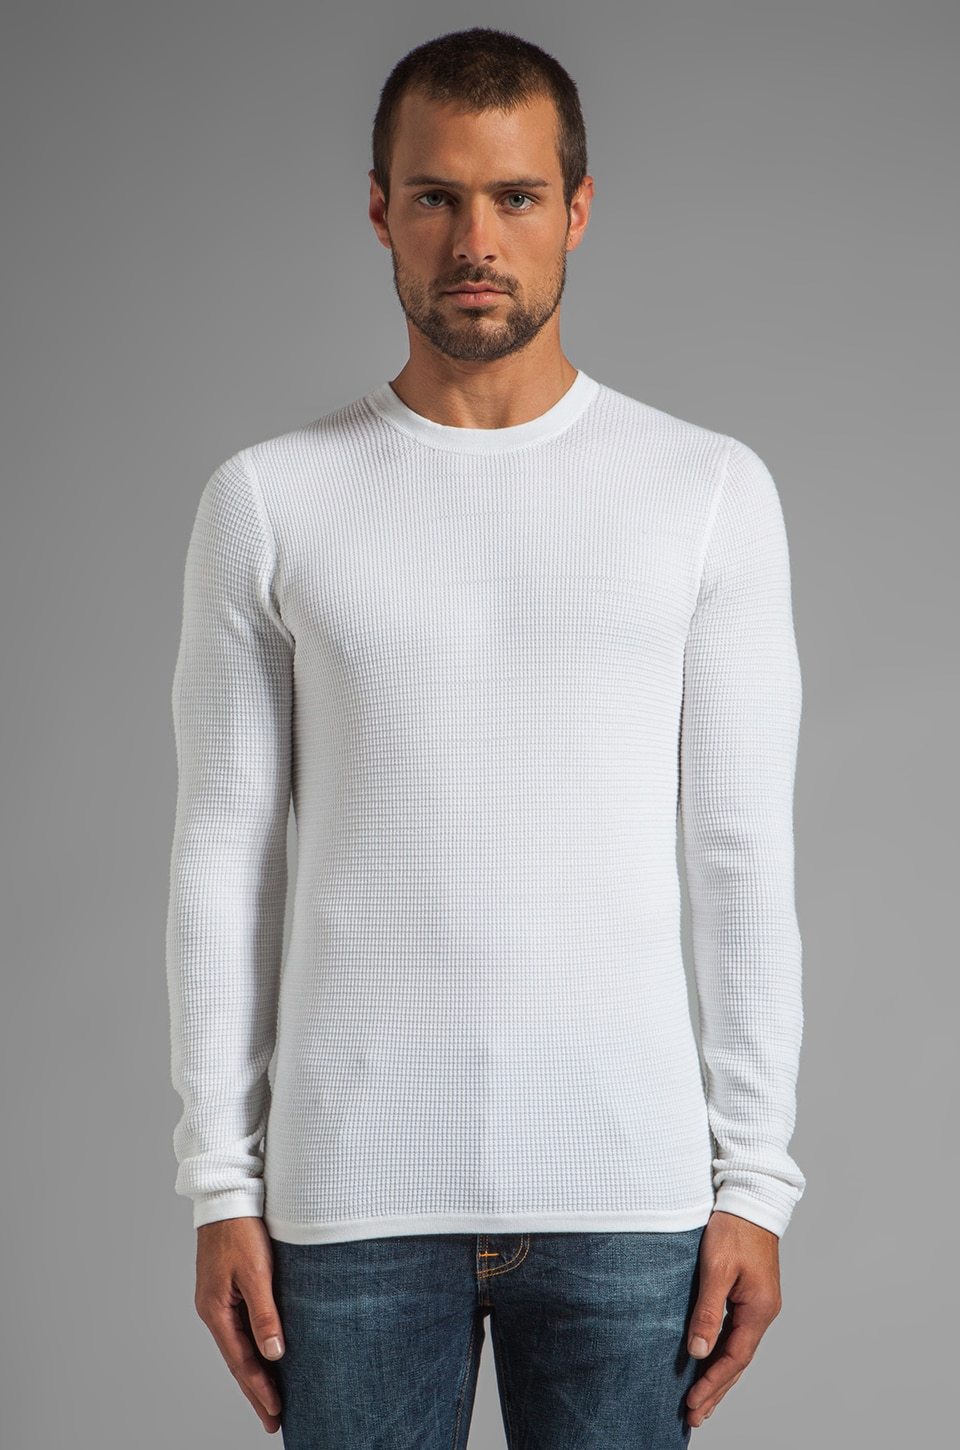 Vince Thermal Crew Neck Sweater in White